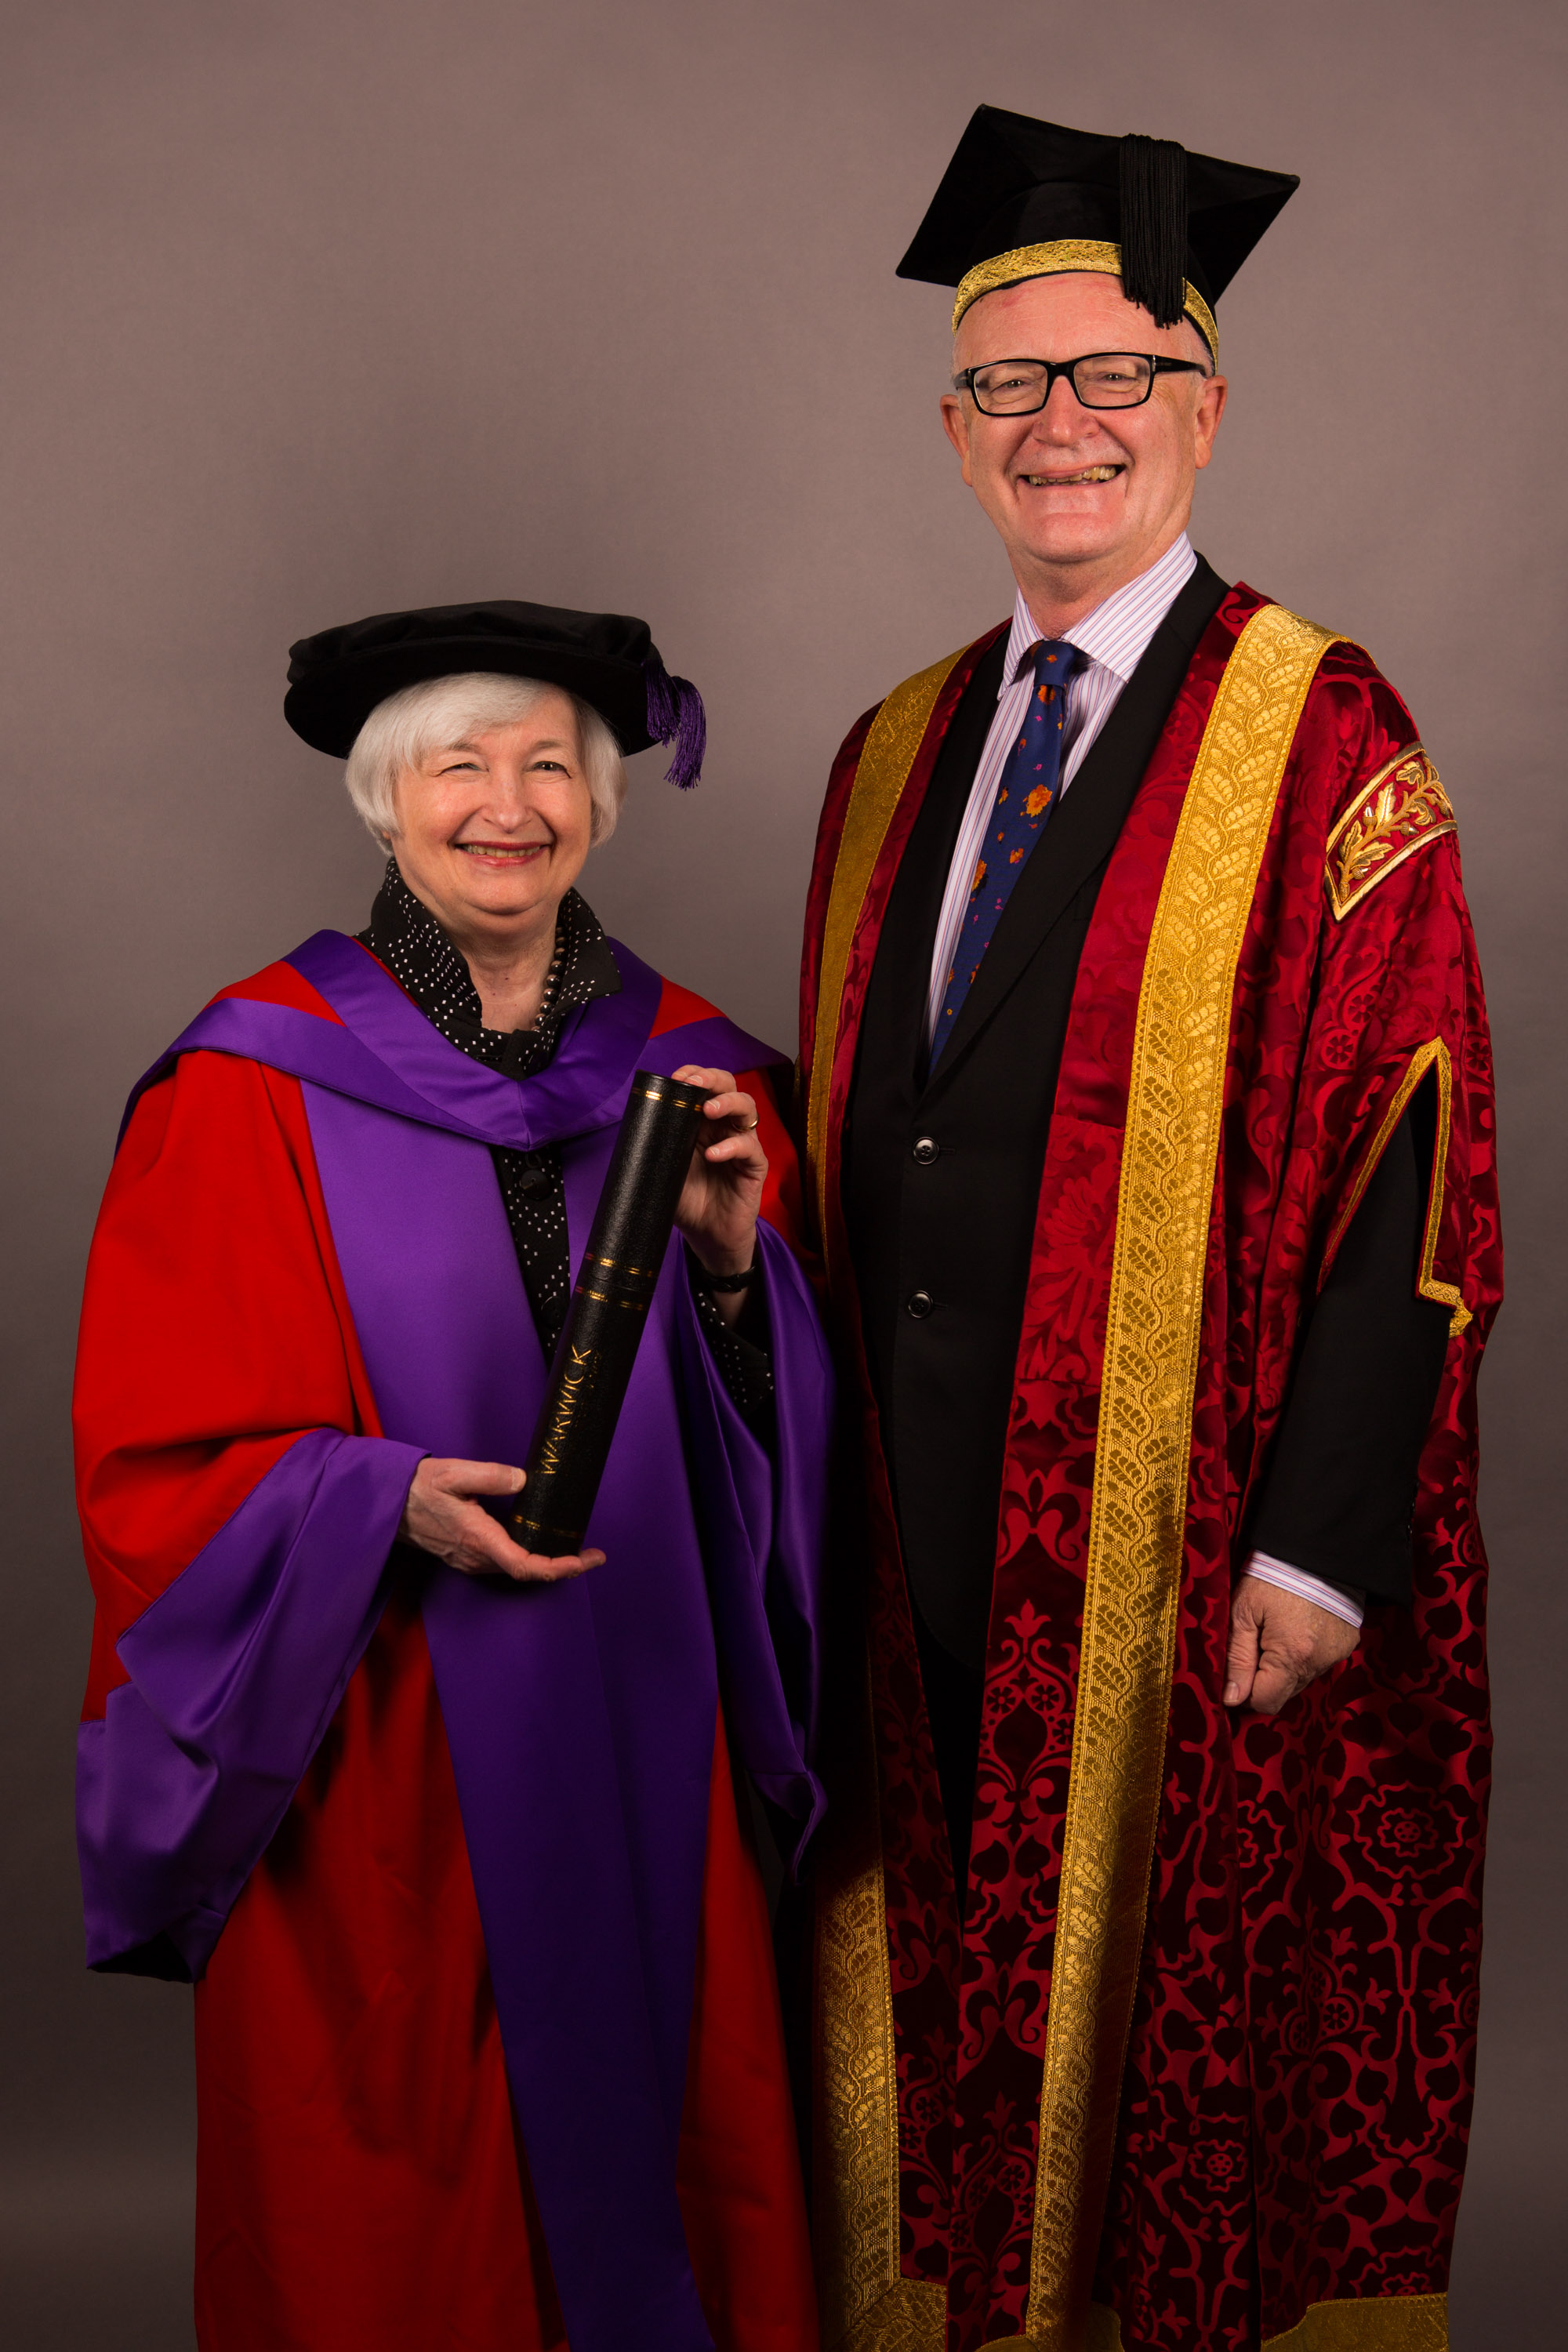 Doctor of the university